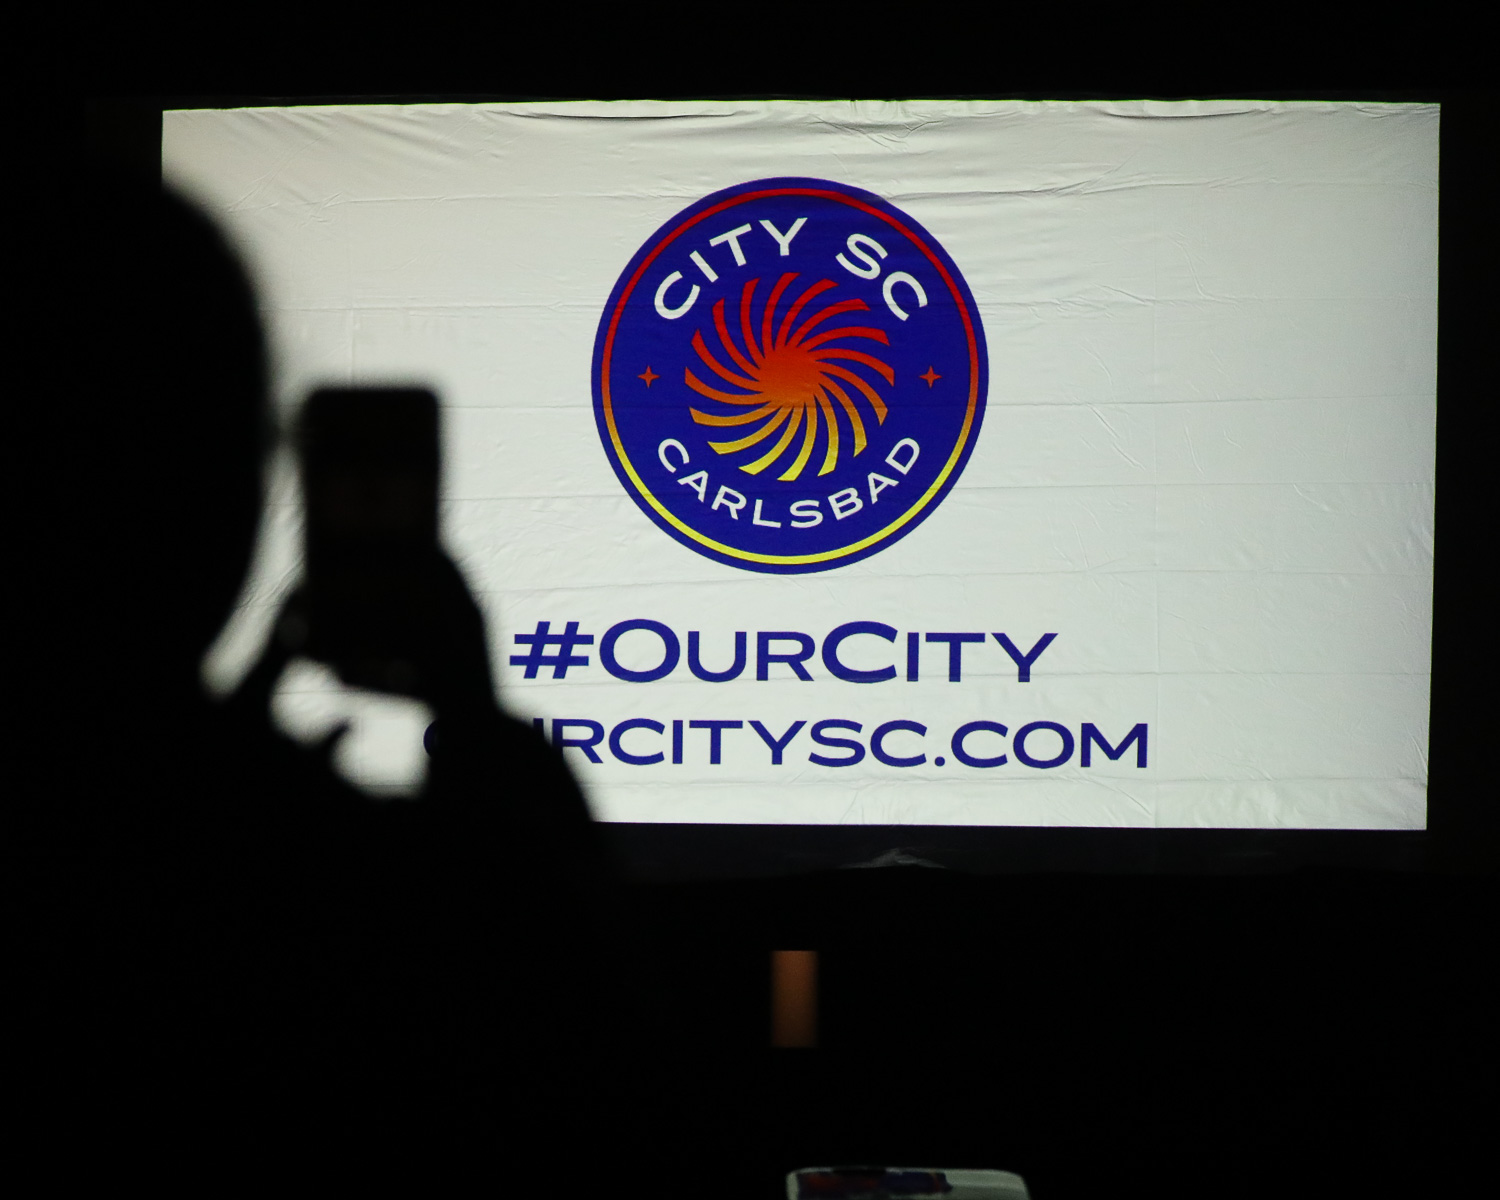 City SC Offers #StayHome Soccer Workouts